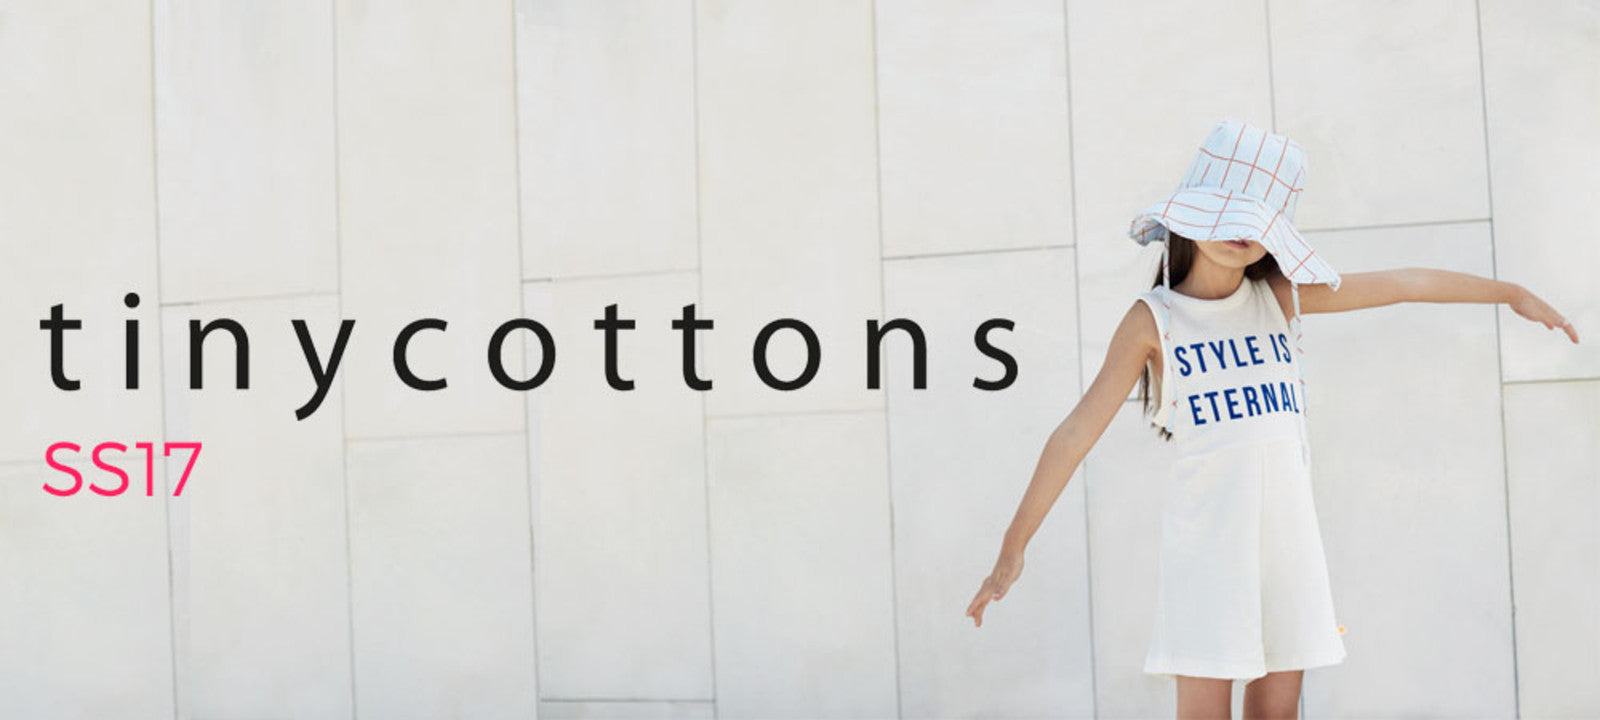 Tinycottons - Hibernation AW15 - quality childrens clothing at Yellow Lolly